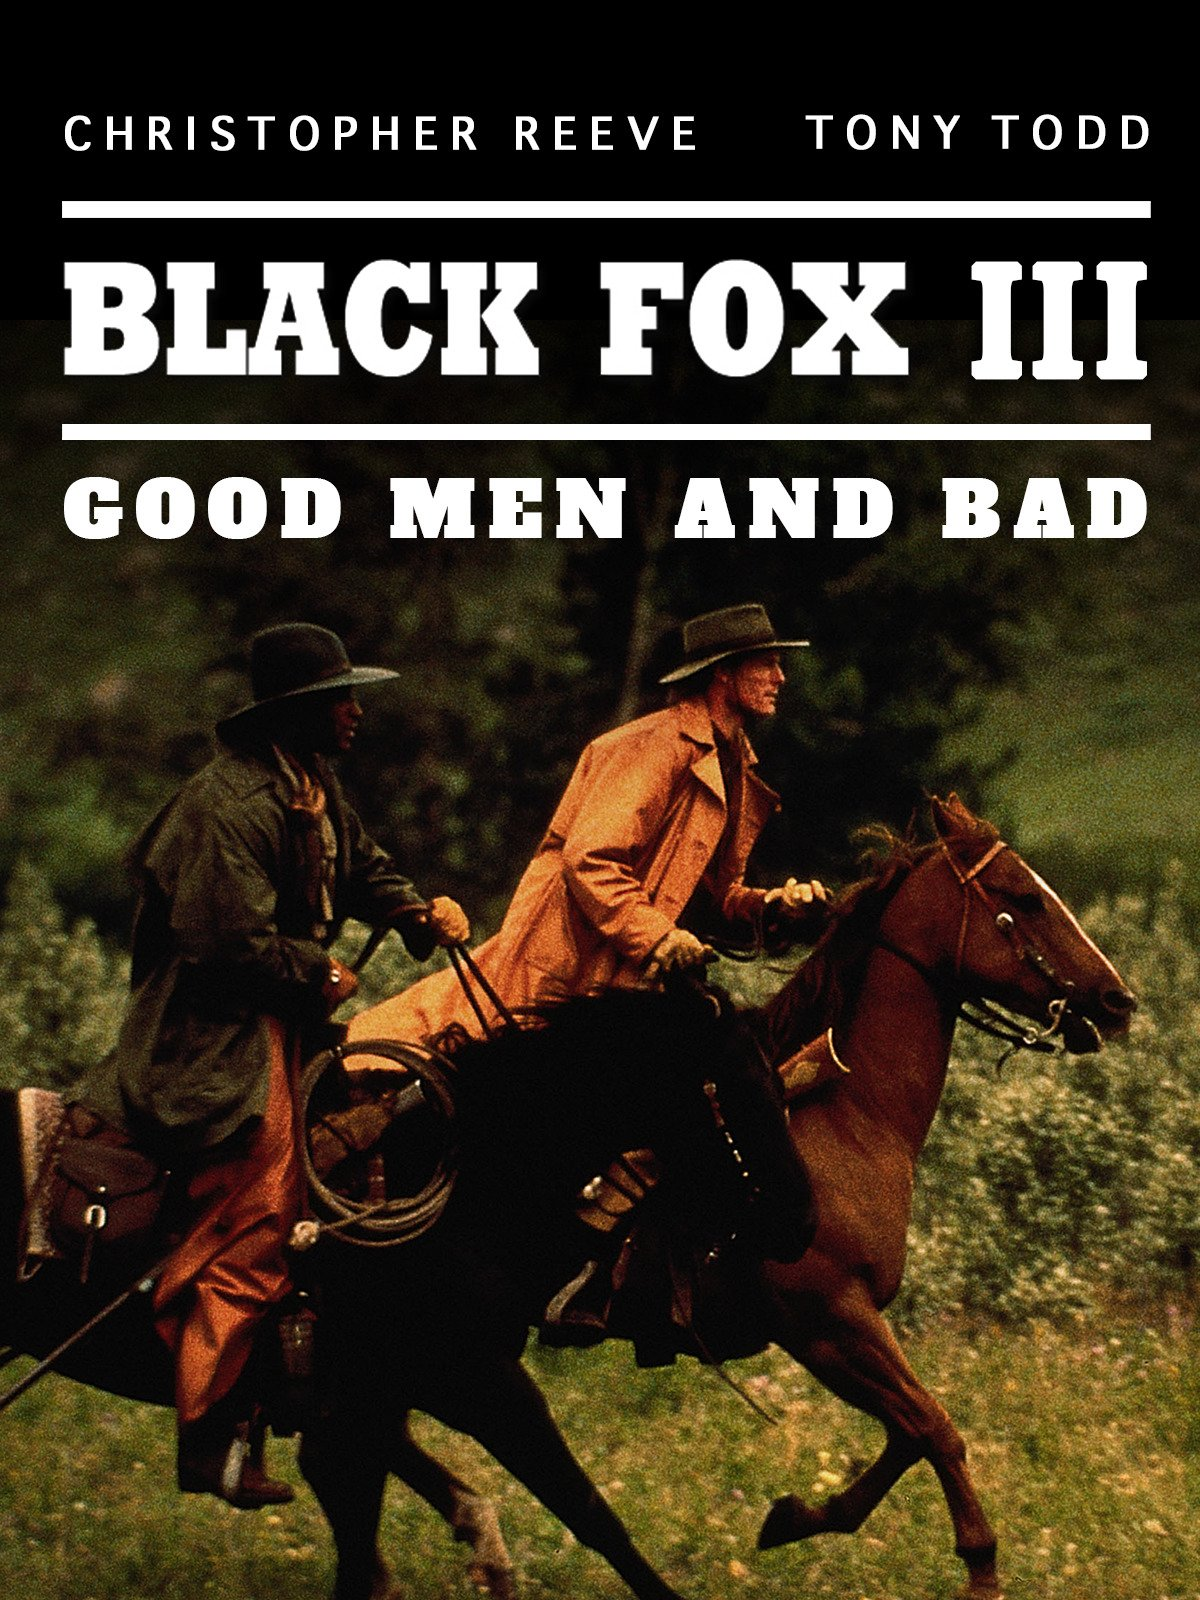 Black Fox Iii Good Men And Bad Christopher Reeve Kim Smartphone Blackfox A2 Ten Android Coates Tony Todd Steven H Stern